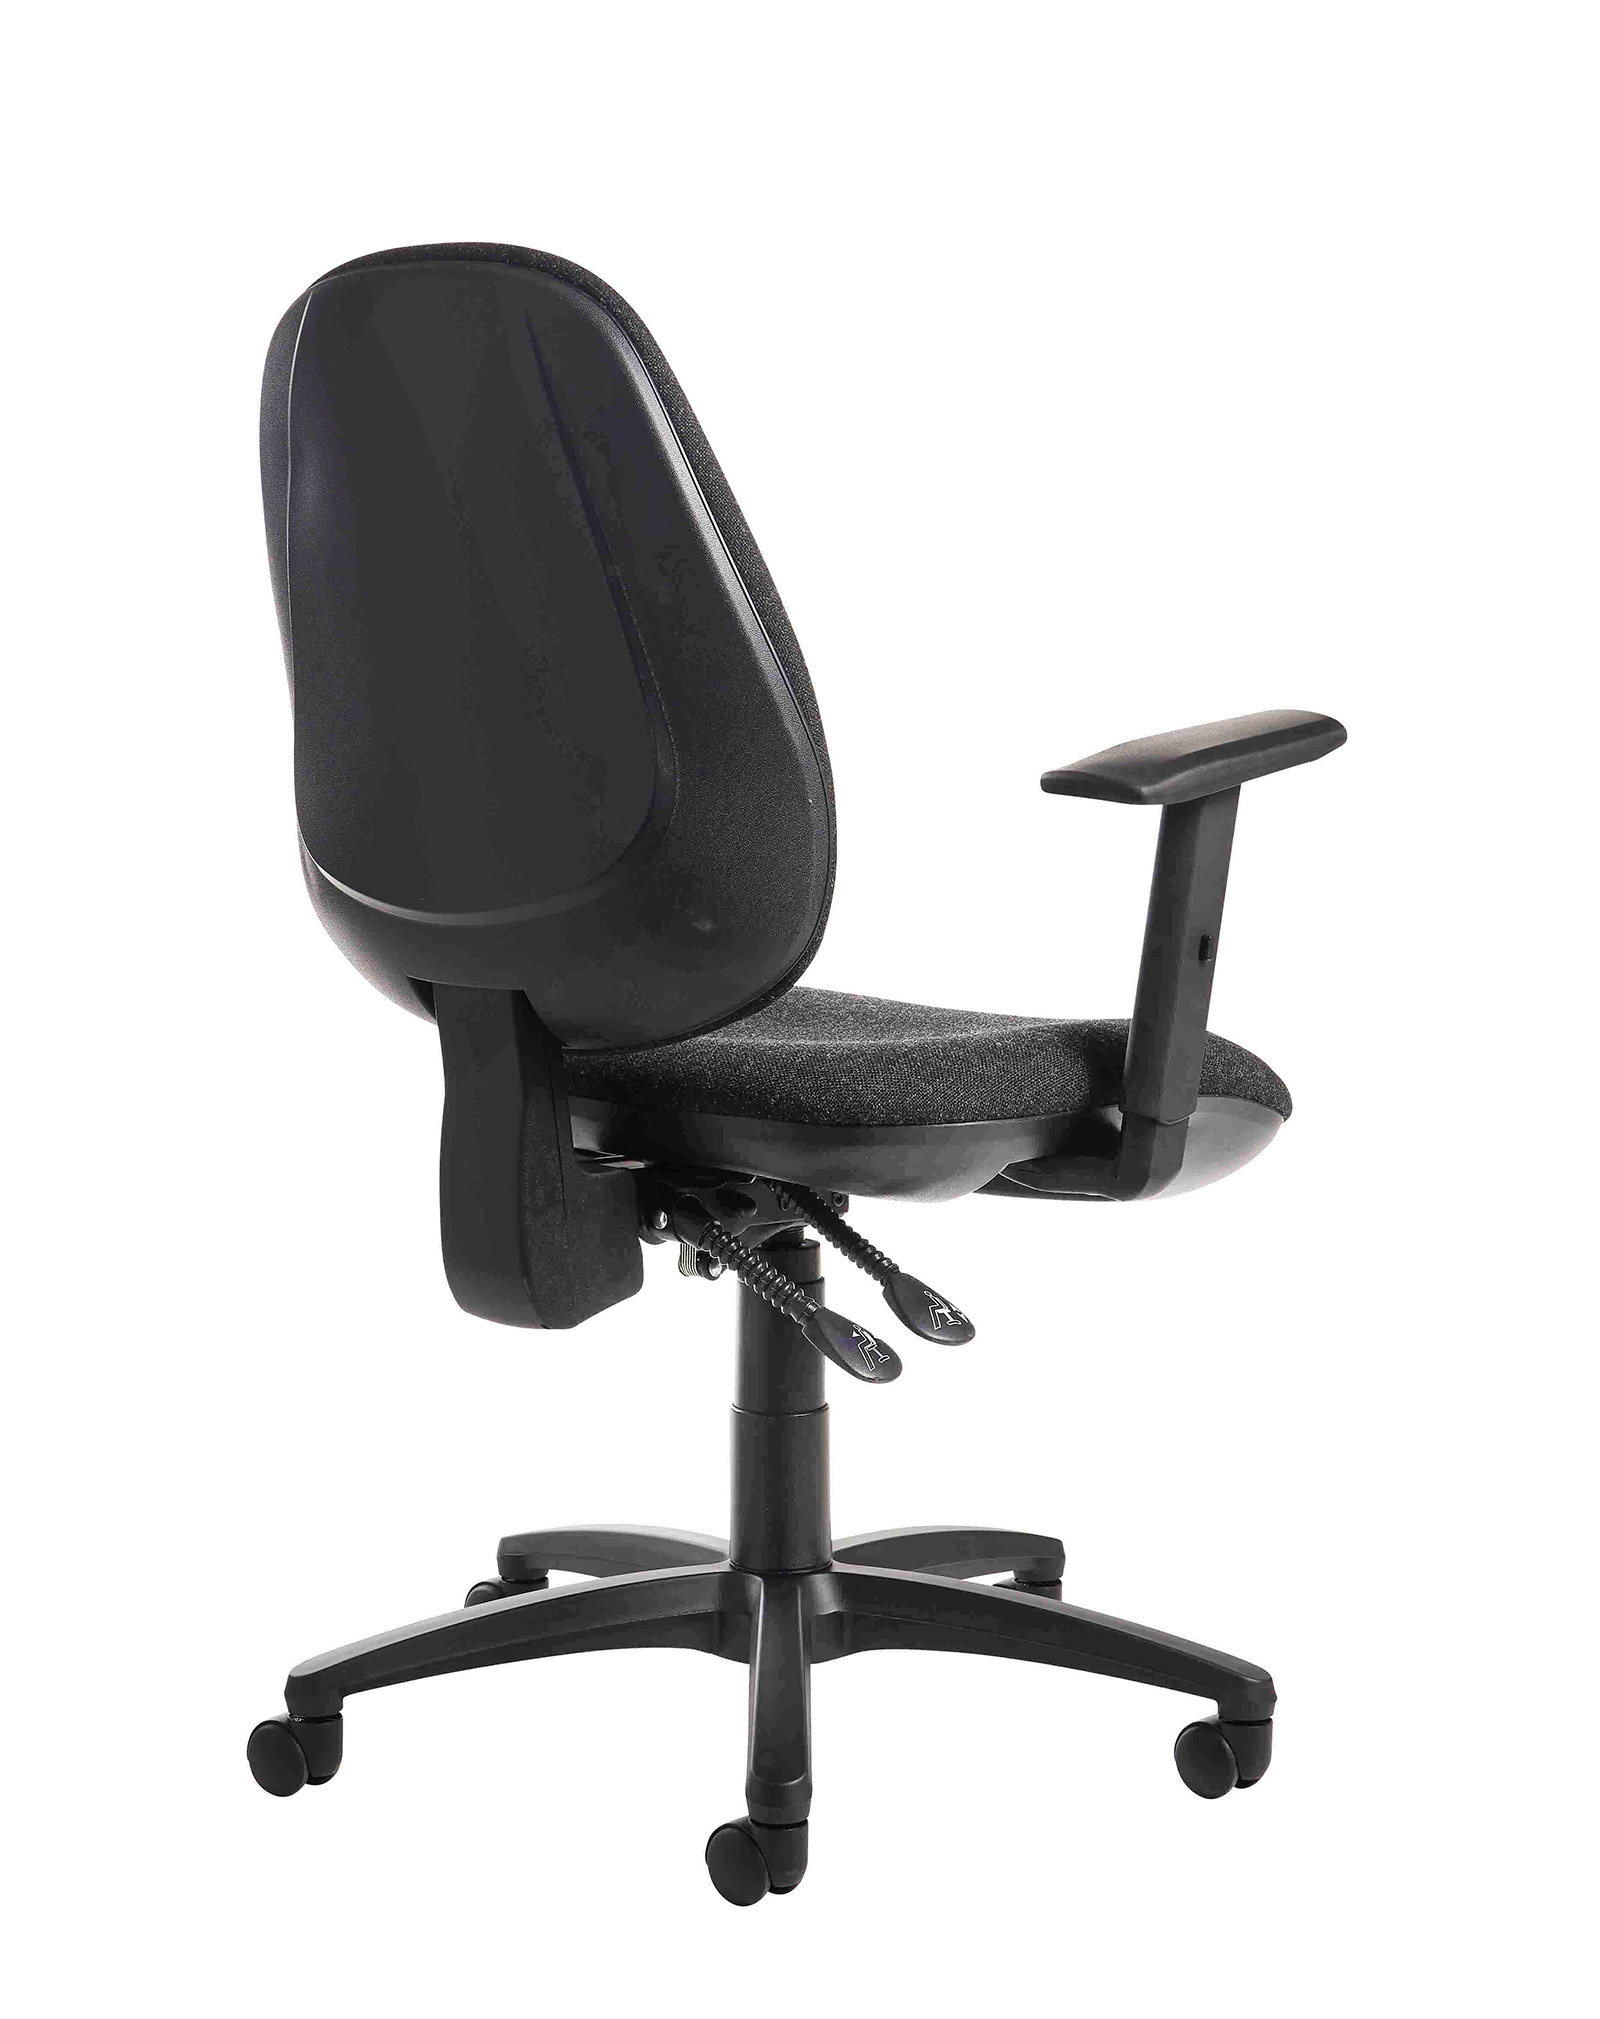 Jota high back operator chair with adjustable arms - charcoal